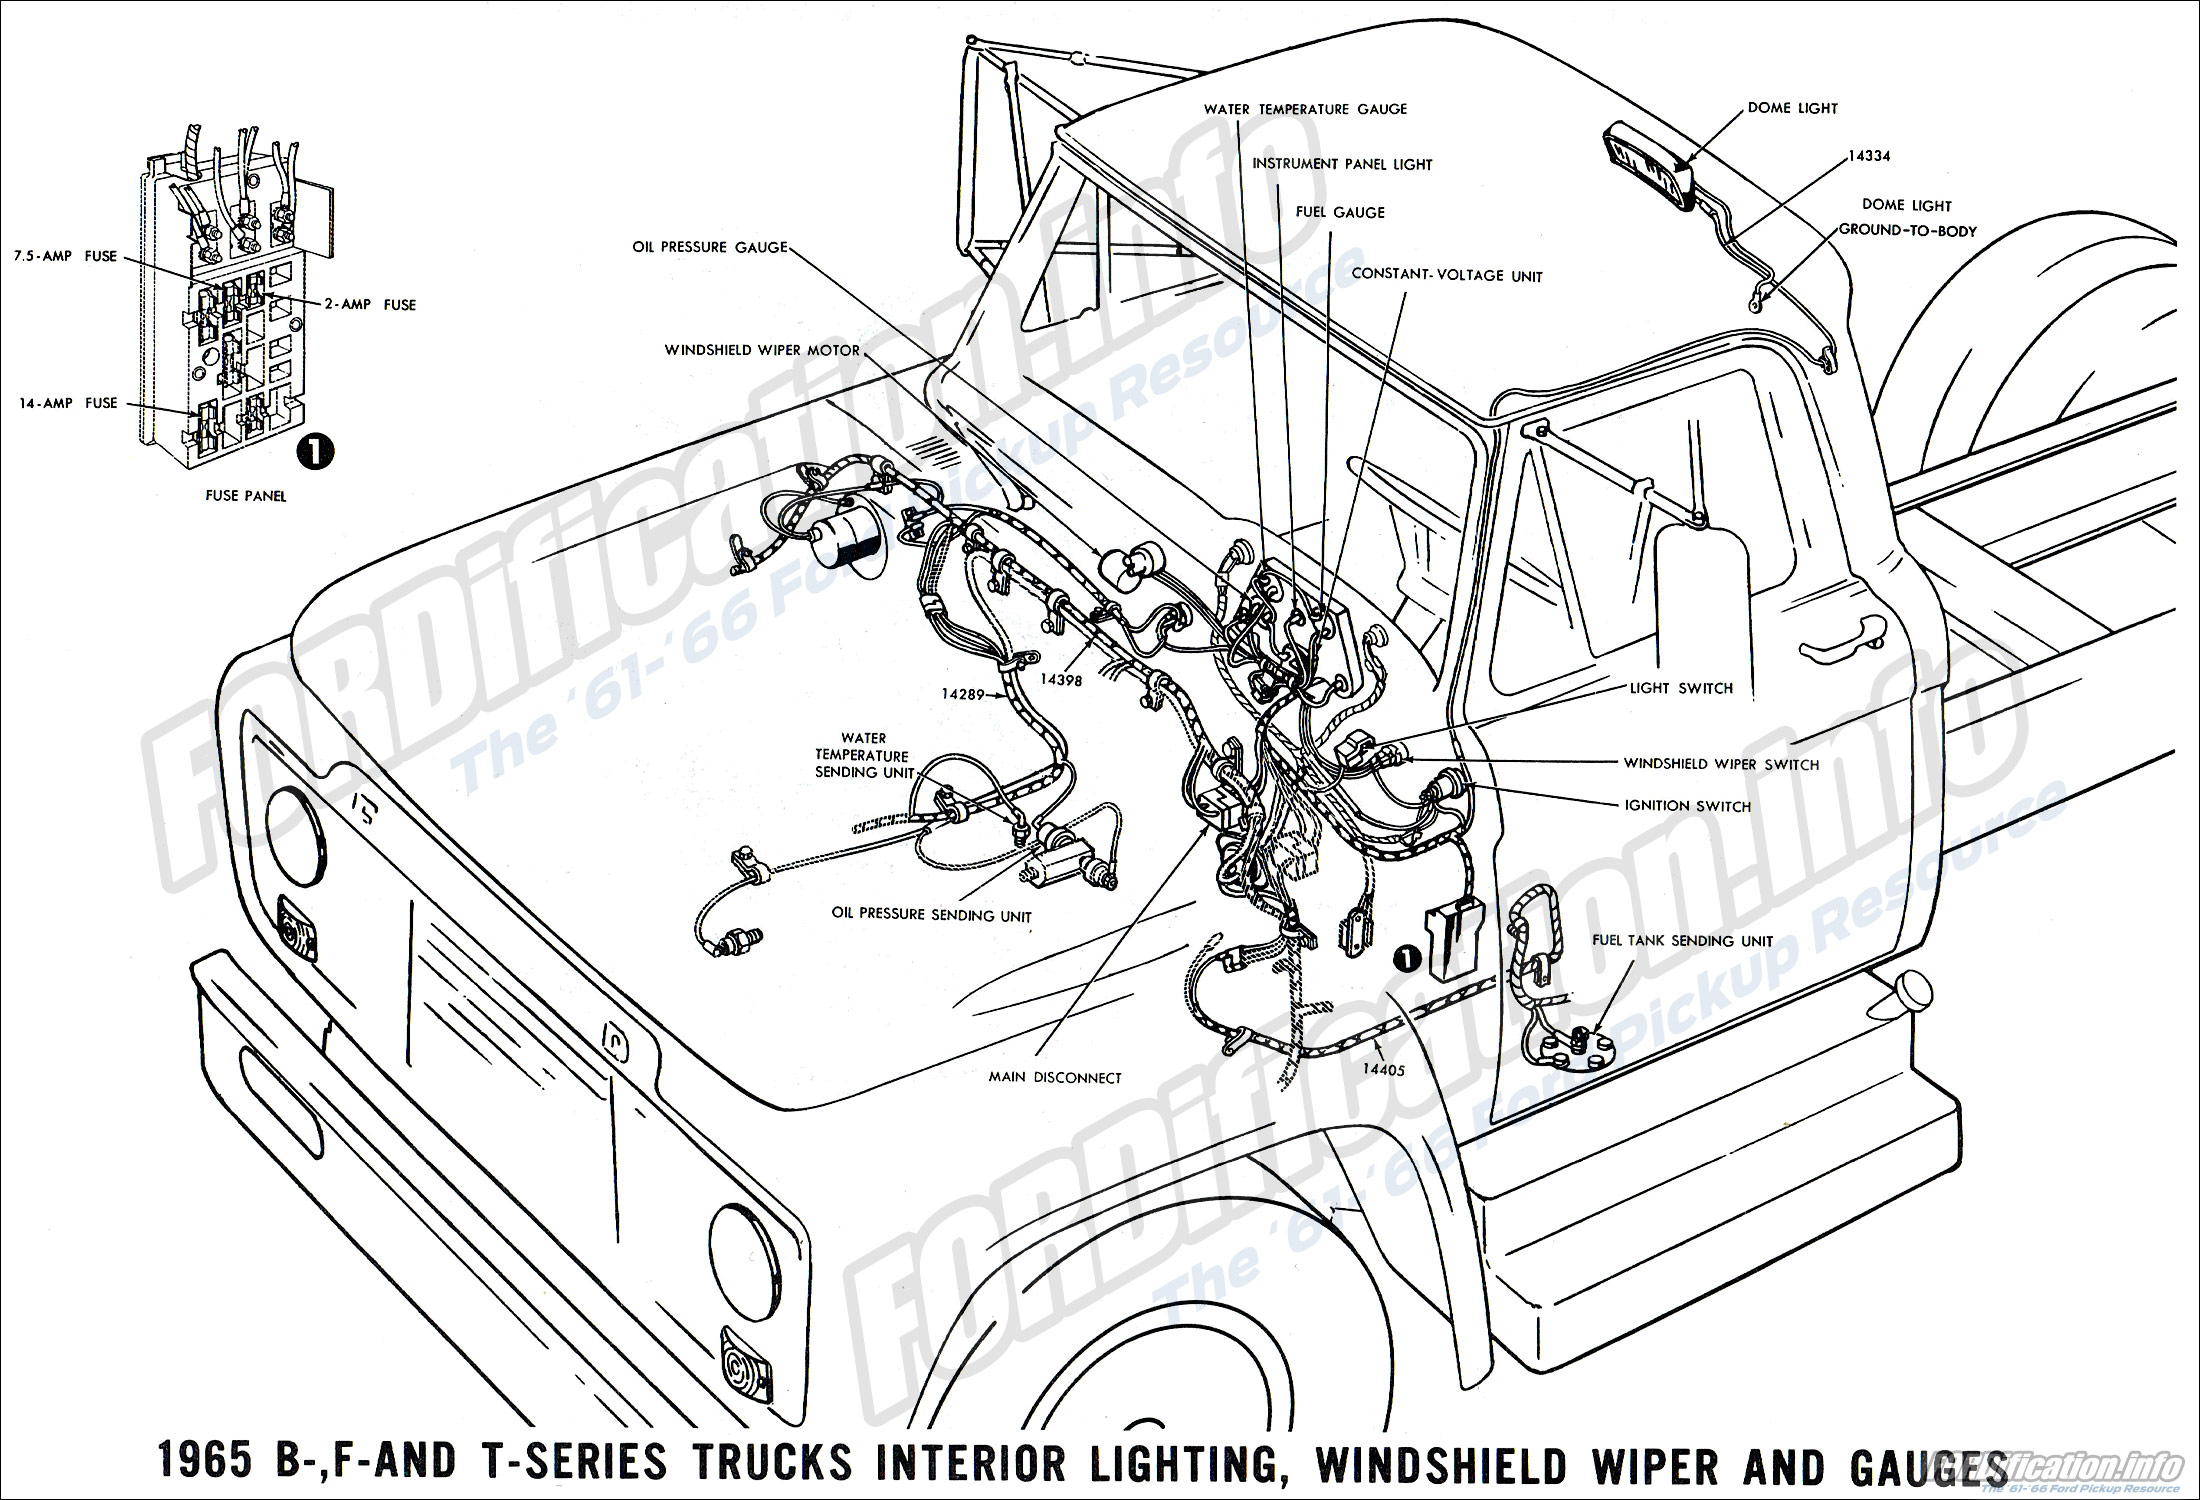 1965 ford truck wiring diagrams fordification info the '61 '66 1966 f-100 wiring harness 1965 b , f and t series truck interior lighting, windshield wiper and gauges